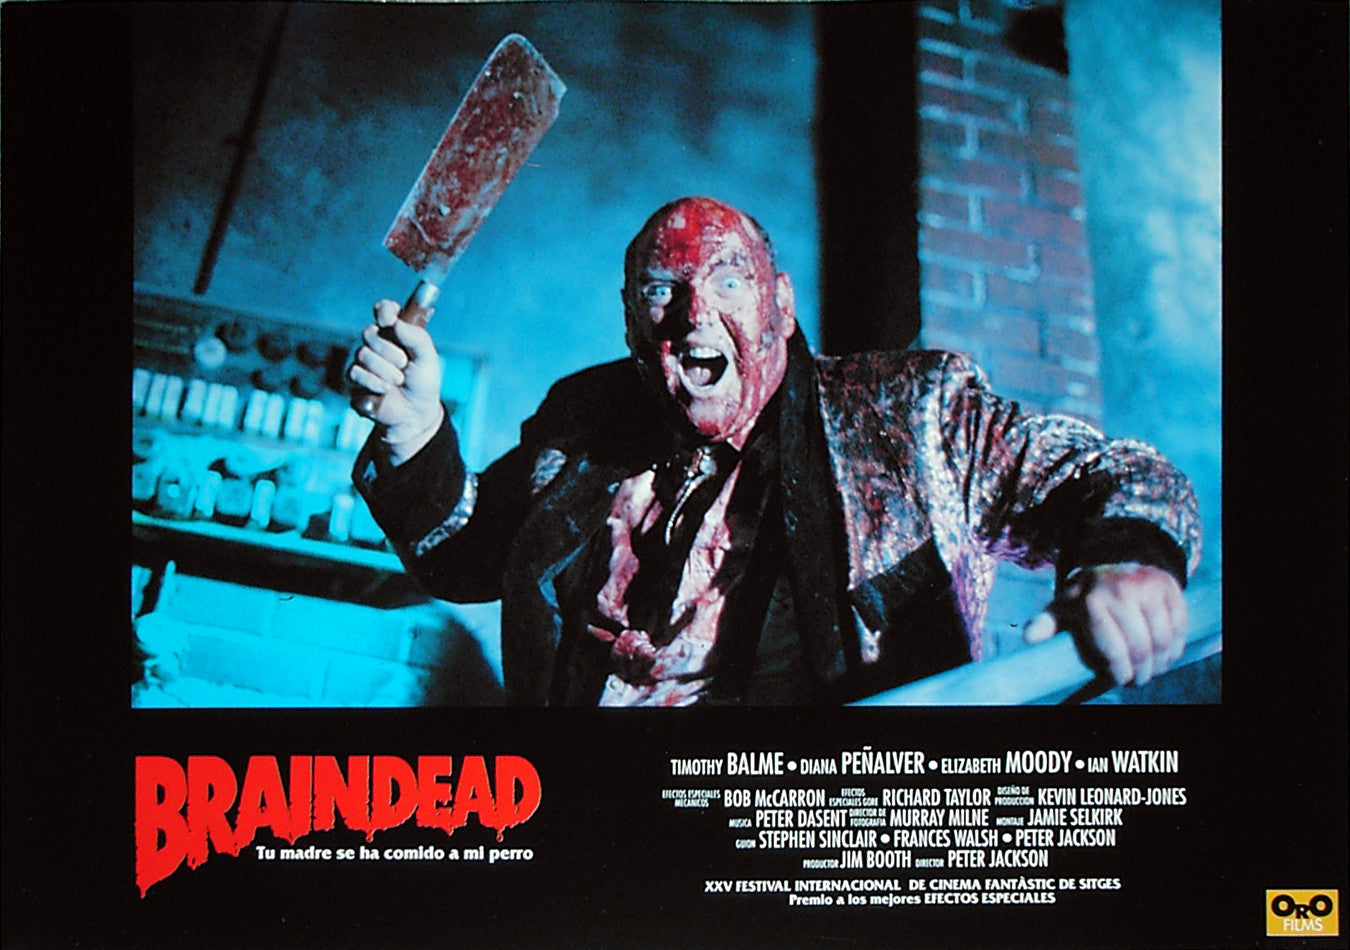 BRAINDEAD - Spanish lobby card v6